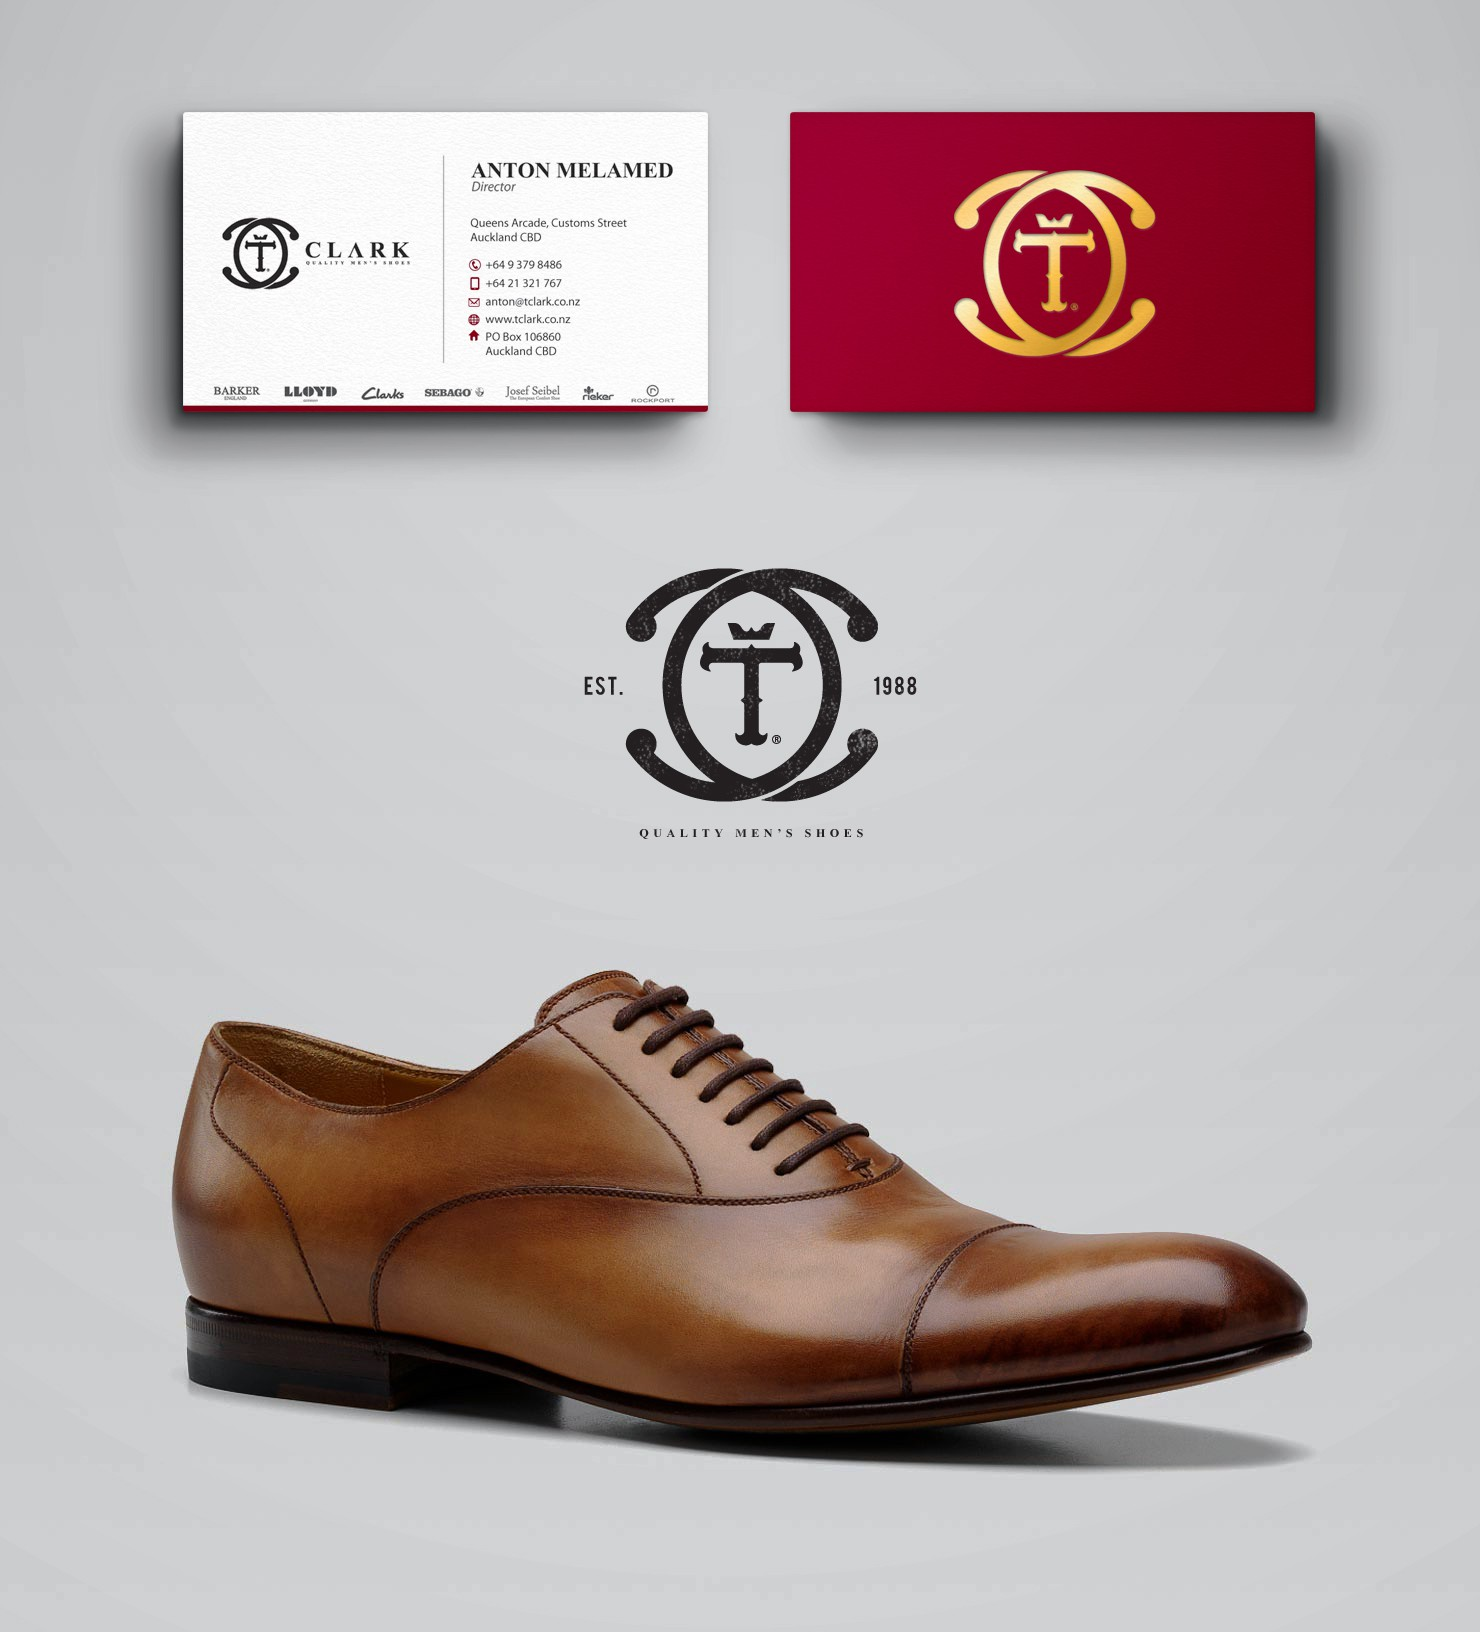 New logo and business card design for country's oldest men's specialized footwear store